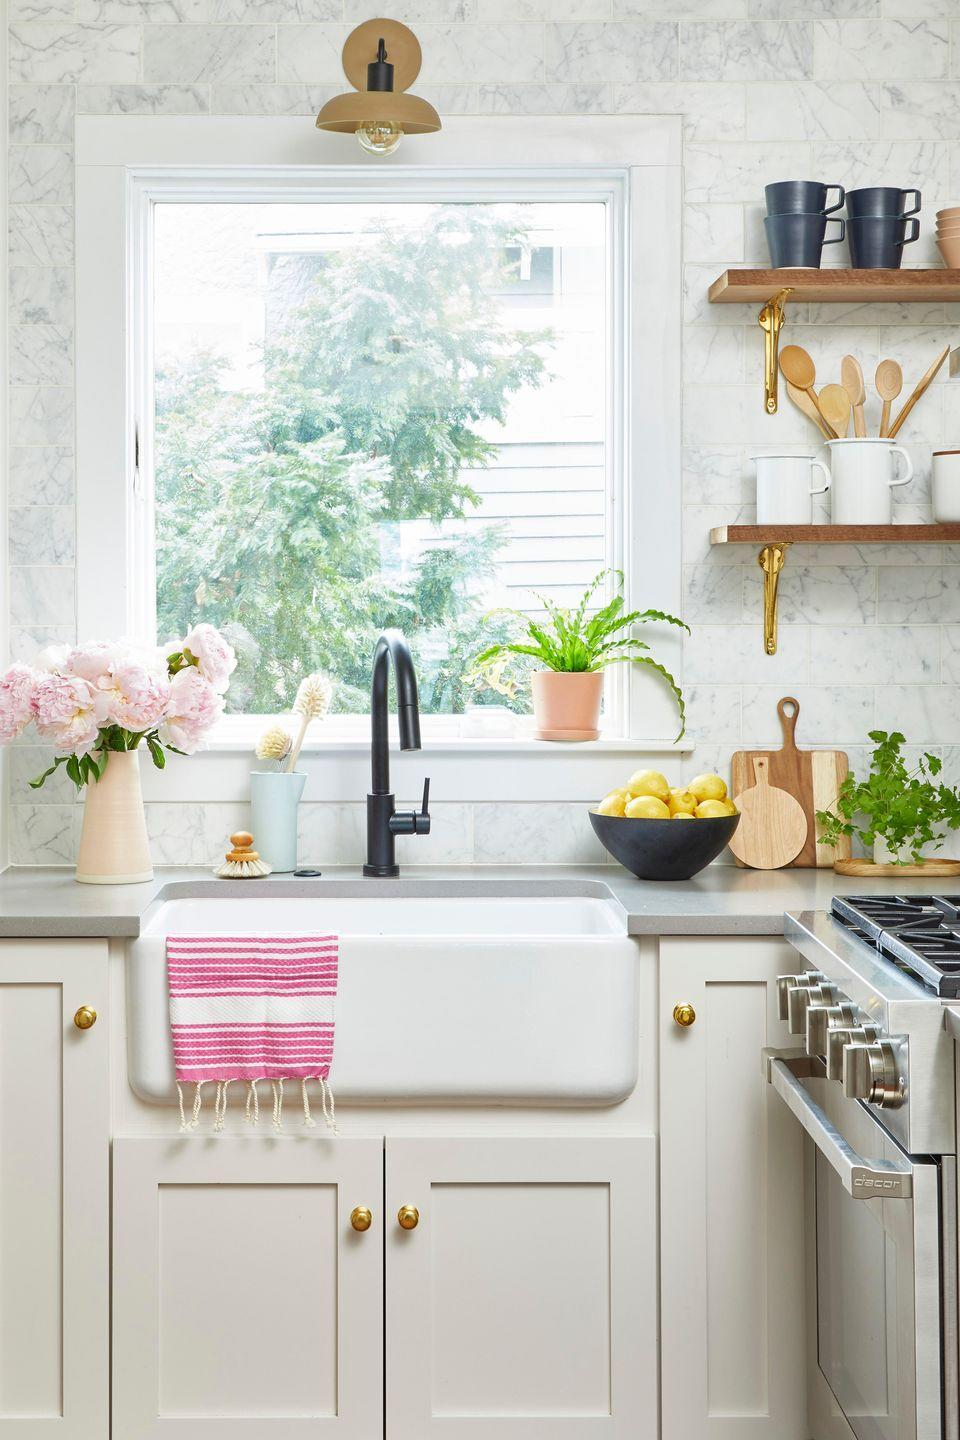 "<p>Unsightly kitchen grime is a mix of dust and grease that builds up over time. Run the exhaust hood over your range every time you cook to keep grease from settling. To de-gunk, use <a href=""http://www.amazon.com/Parker-Bailey-Kitchen-Cabinet-Cream/dp/B000ETQMAO/?tag=syn-yahoo-20&ascsubtag=%5Bartid%7C10063.g.35370825%5Bsrc%7Cyahoo-us"" rel=""nofollow noopener"" target=""_blank"" data-ylk=""slk:Parker & Bailey Kitchen Cabinet Cream"" class=""link rapid-noclick-resp"">Parker & Bailey Kitchen Cabinet Cream</a> because it cuts through dirt and leaves wood moisturized. Do an extra pass around any places that grease collects, like door and drawer pulls. </p><p><a class=""link rapid-noclick-resp"" href=""https://www.amazon.com/Parker-Bailey-Kitchen-Cabinet-Cream/dp/B000ETQMAO?tag=syn-yahoo-20&ascsubtag=%5Bartid%7C10063.g.35370825%5Bsrc%7Cyahoo-us"" rel=""nofollow noopener"" target=""_blank"" data-ylk=""slk:SHOP CABINET CREAM"">SHOP CABINET CREAM</a></p>"